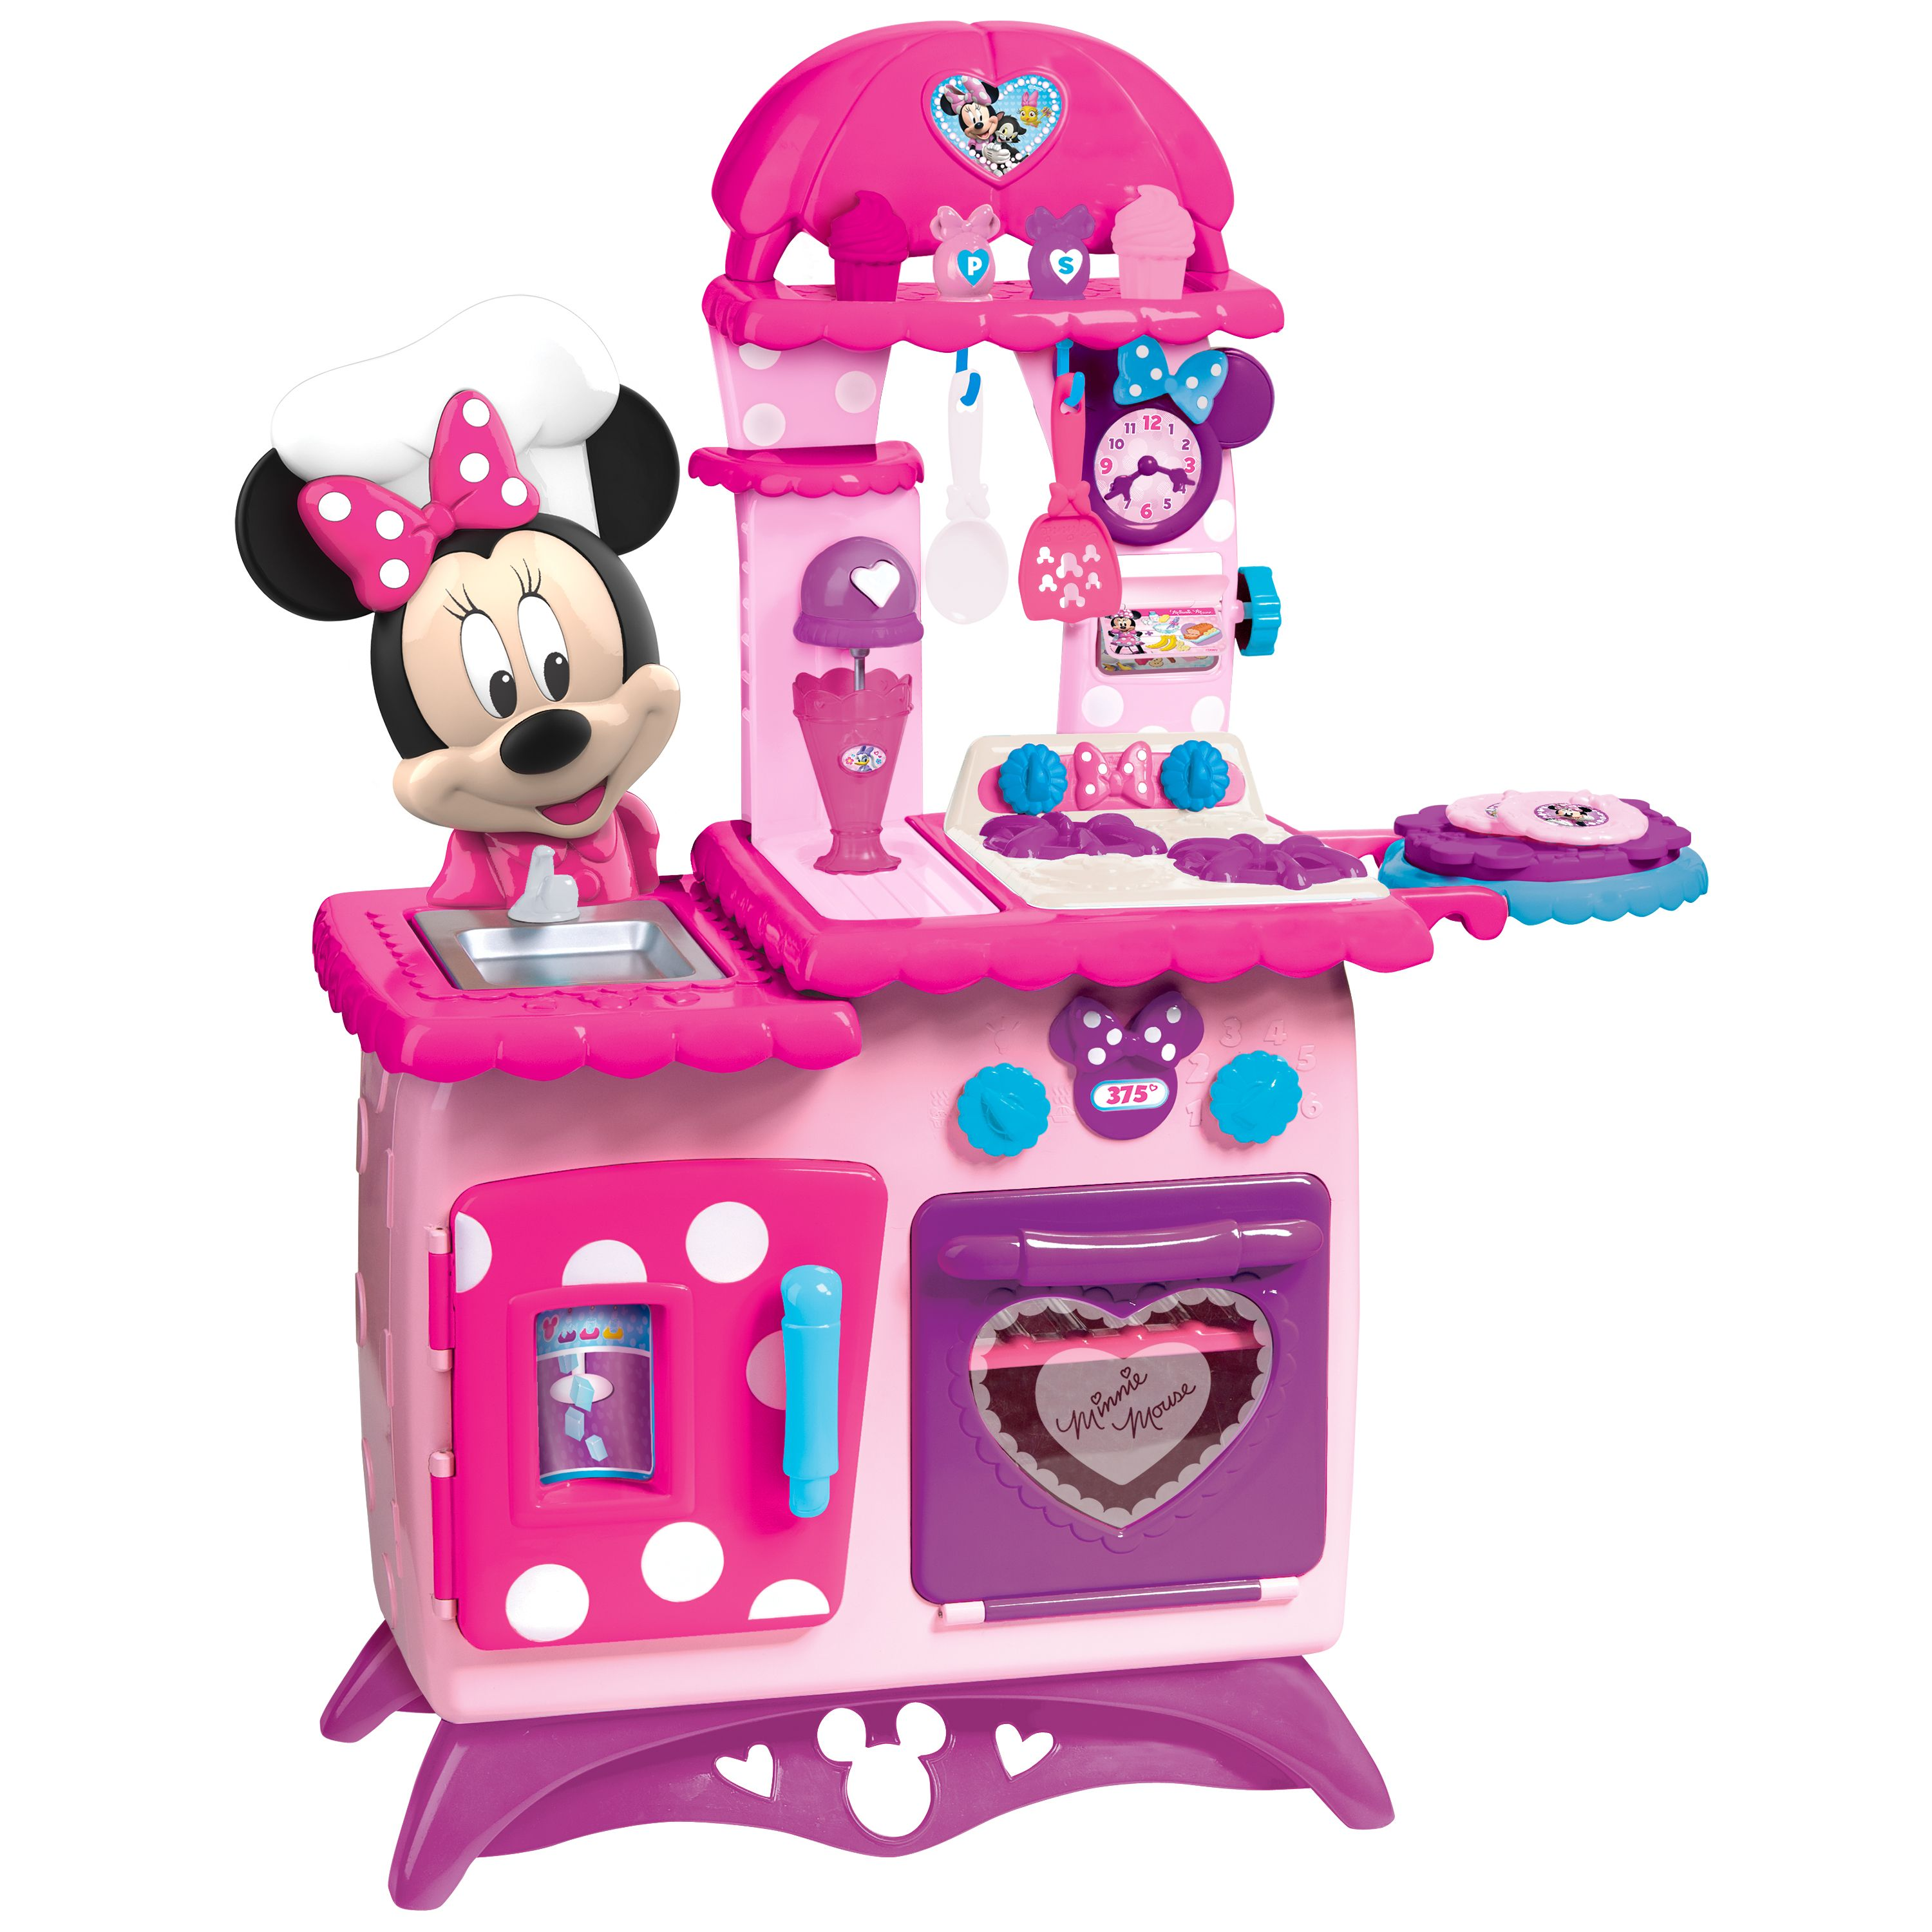 Minnie Flipping Fun Kitchen Ages 3 Walmart Com Minnie Mouse Kitchen Minnie Mouse Toys Minnie Mouse Girl